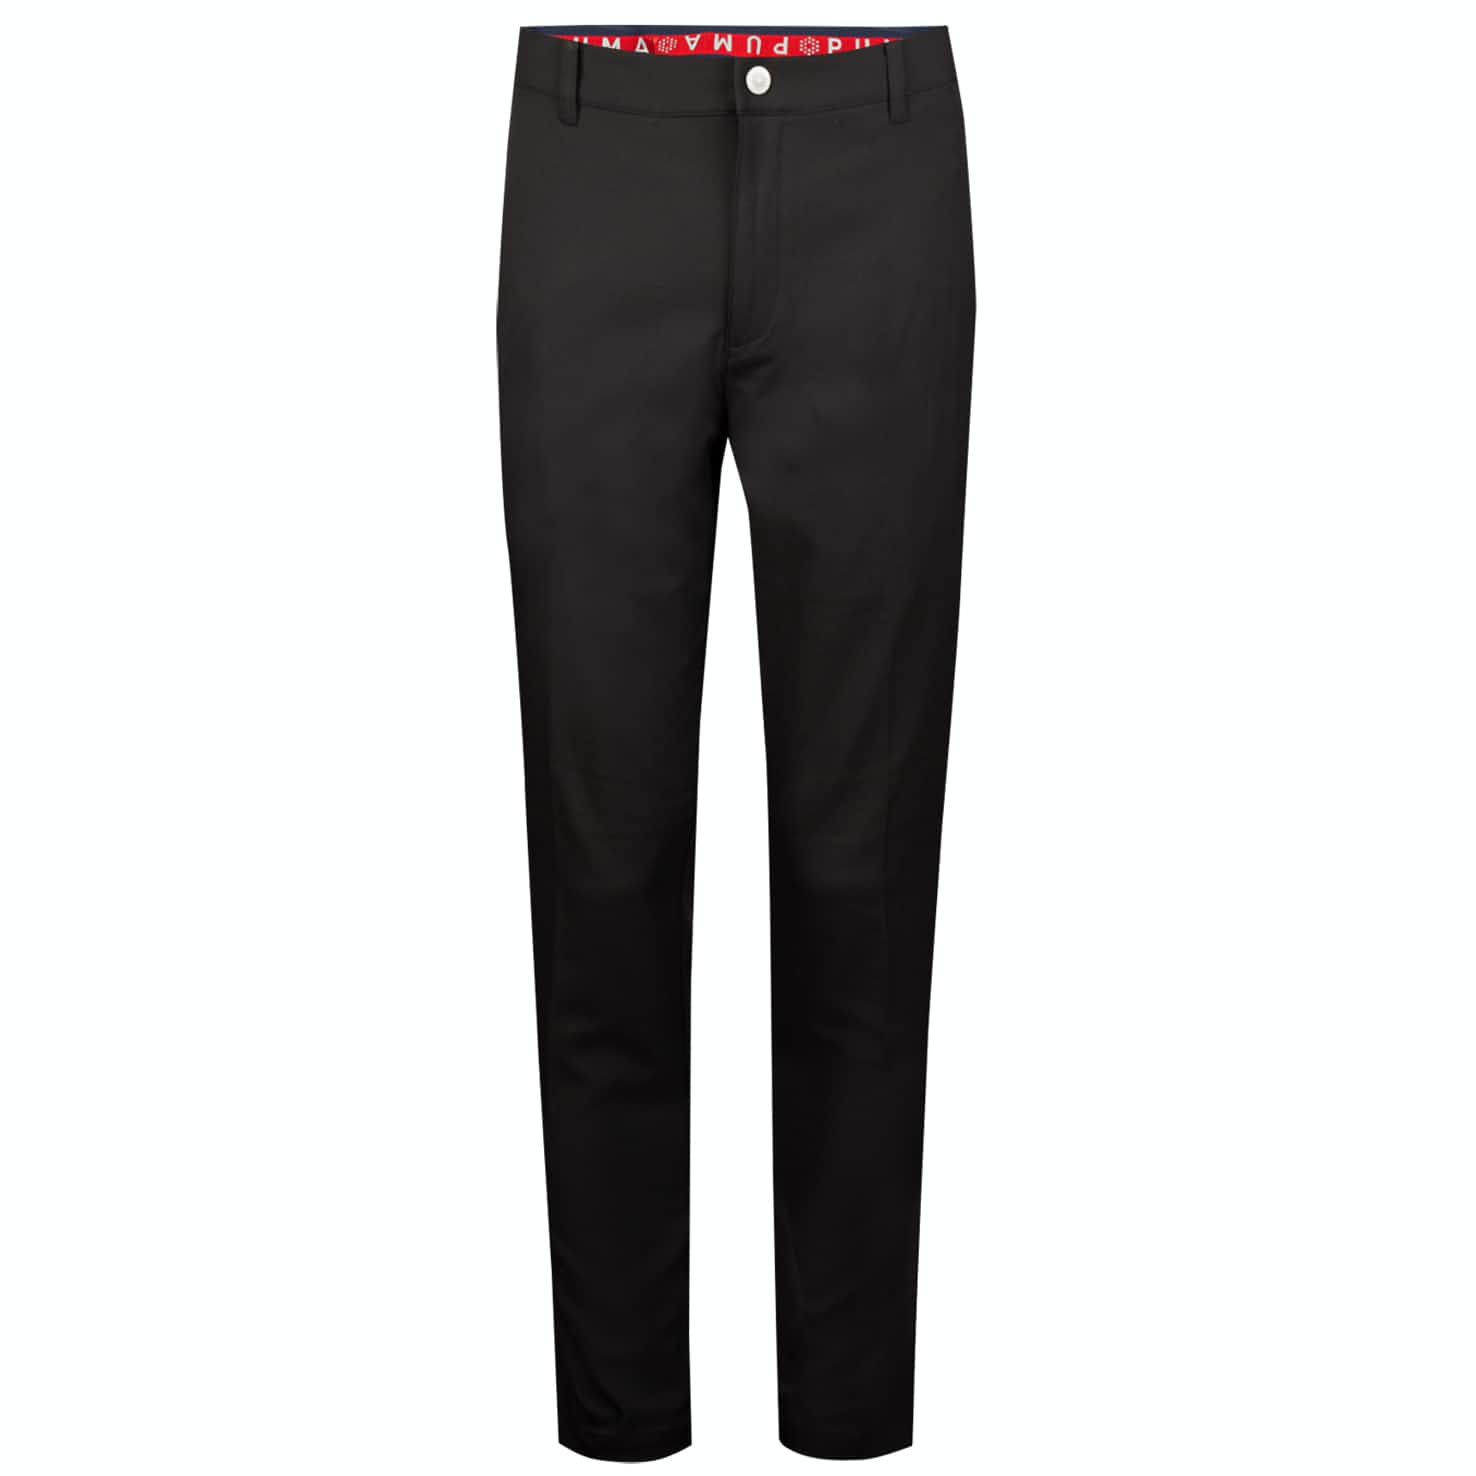 Jackpot Tailored Pants  Black - 2020